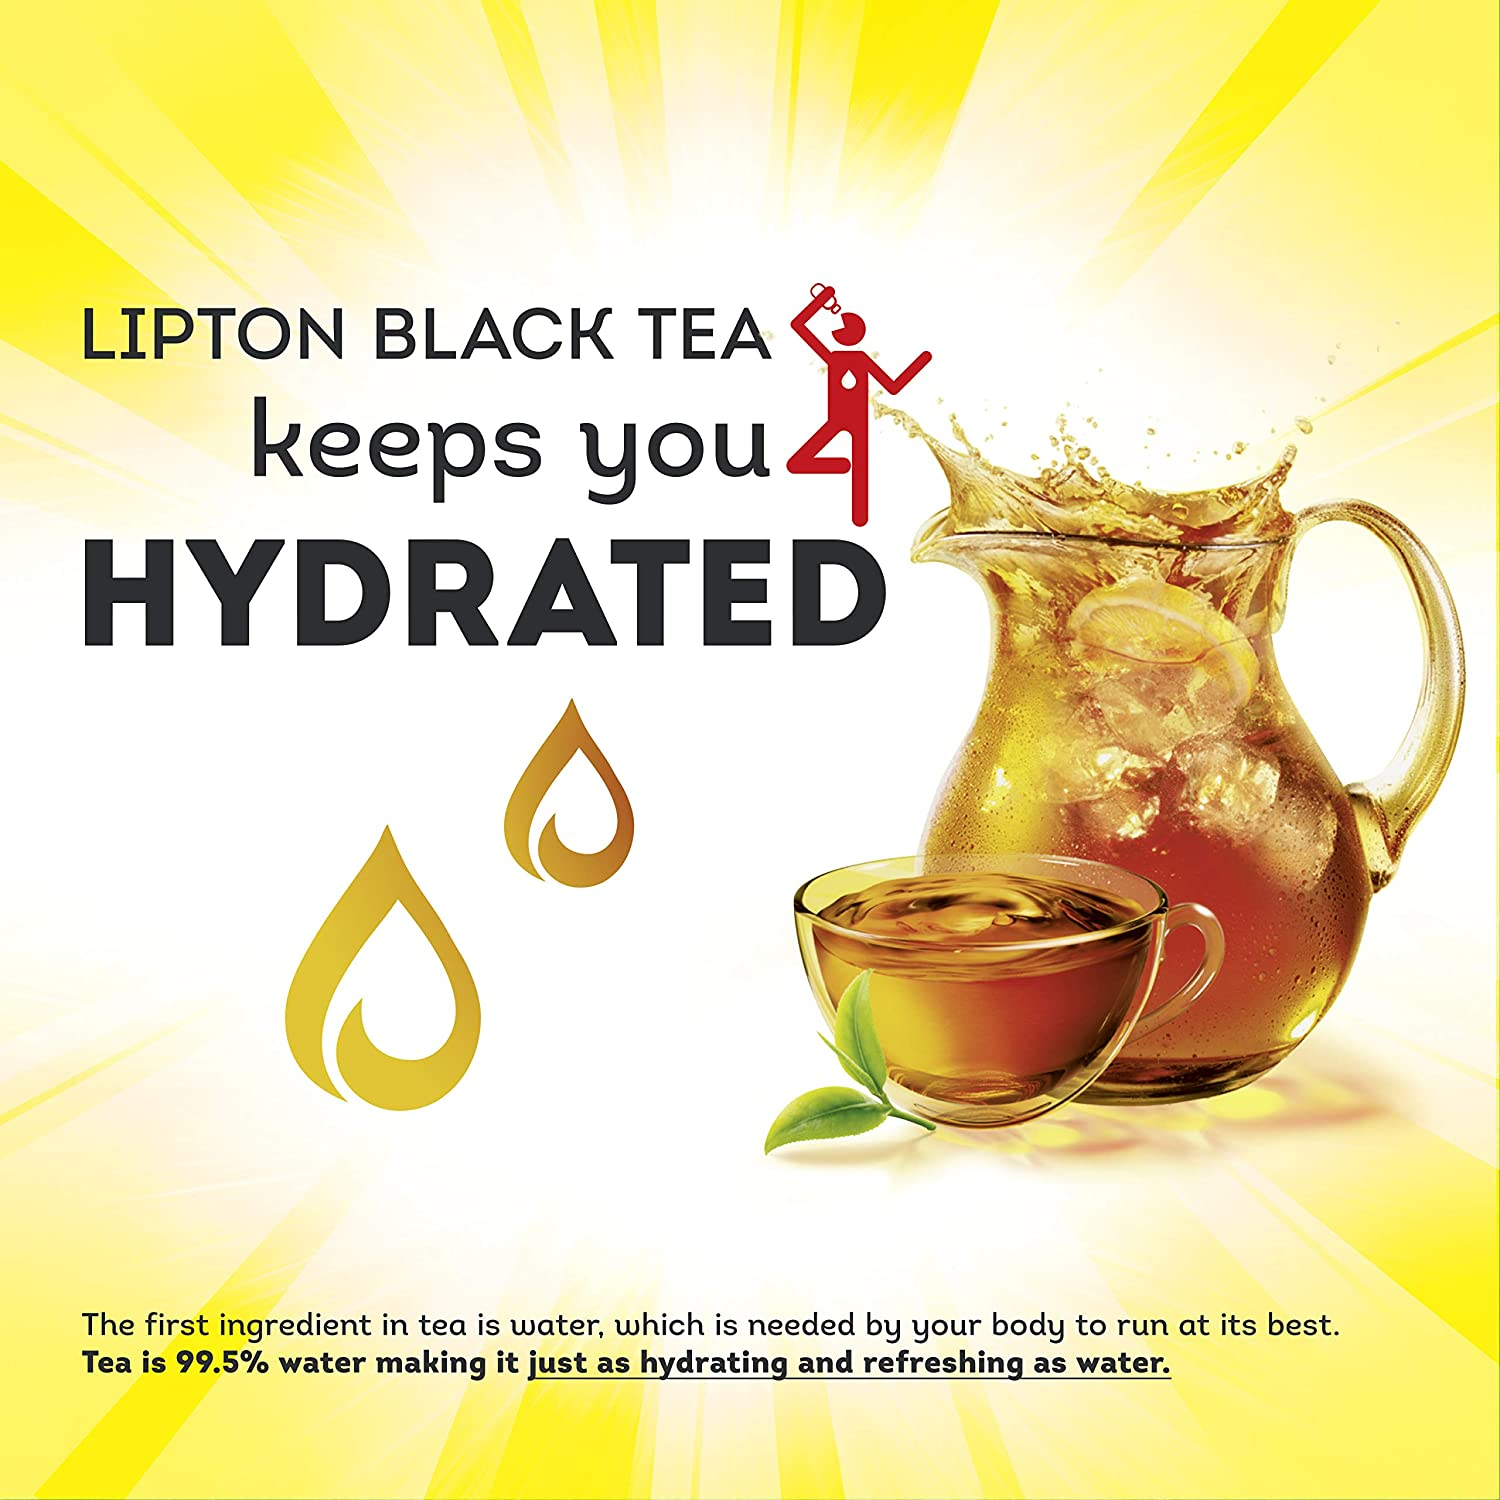 Lipton Tea Bags For A Naturally Smooth Taste Black Tea Can Help Support a Healthy Heart 8 oz 100 Count, Pack of 6